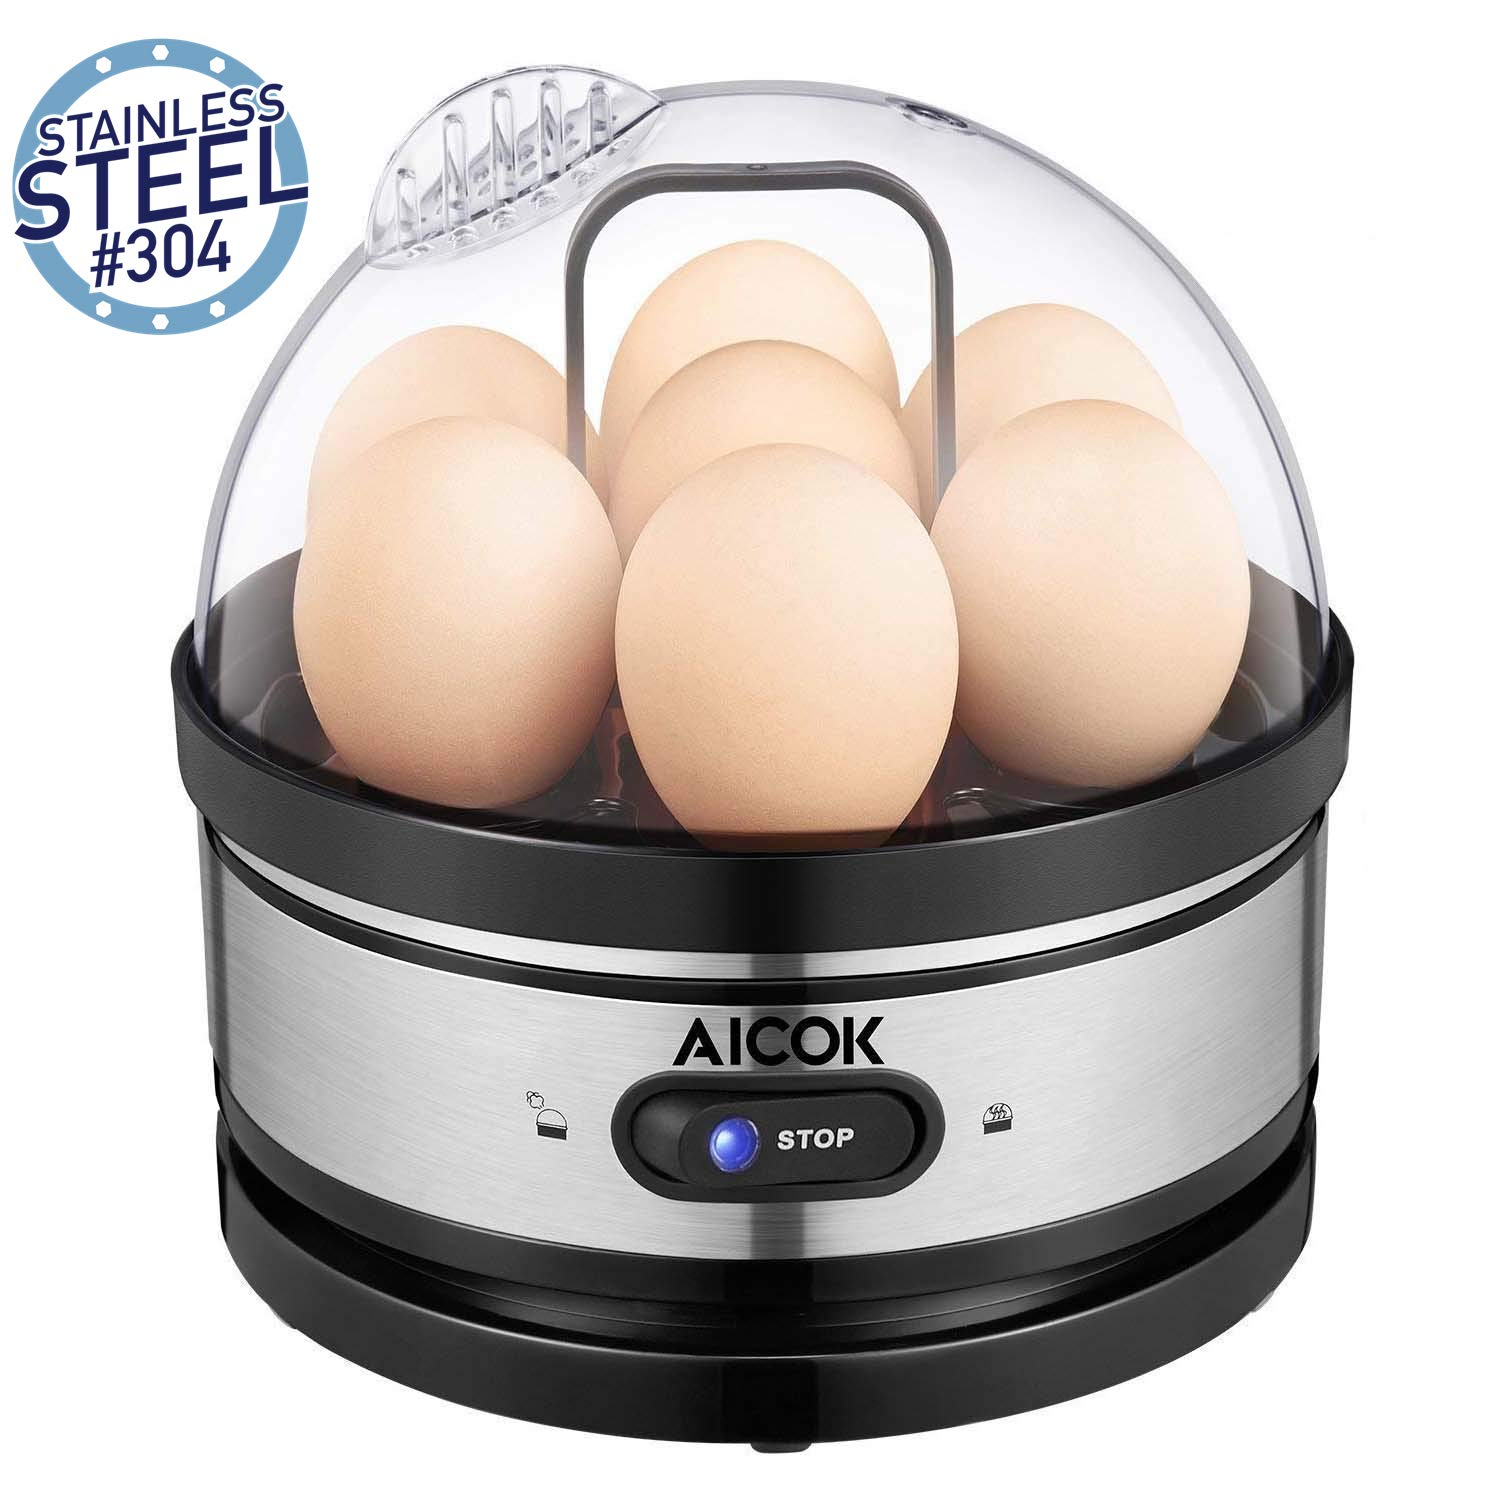 Egg Cooker, Aicok Egg Steamer with Heat Preservation Function,7 Egg Capacity Stainless Steel Electric Egg Boiler for Hard Boiled Eggs, Poached Eggs, Omelets with Automatic Power-Off